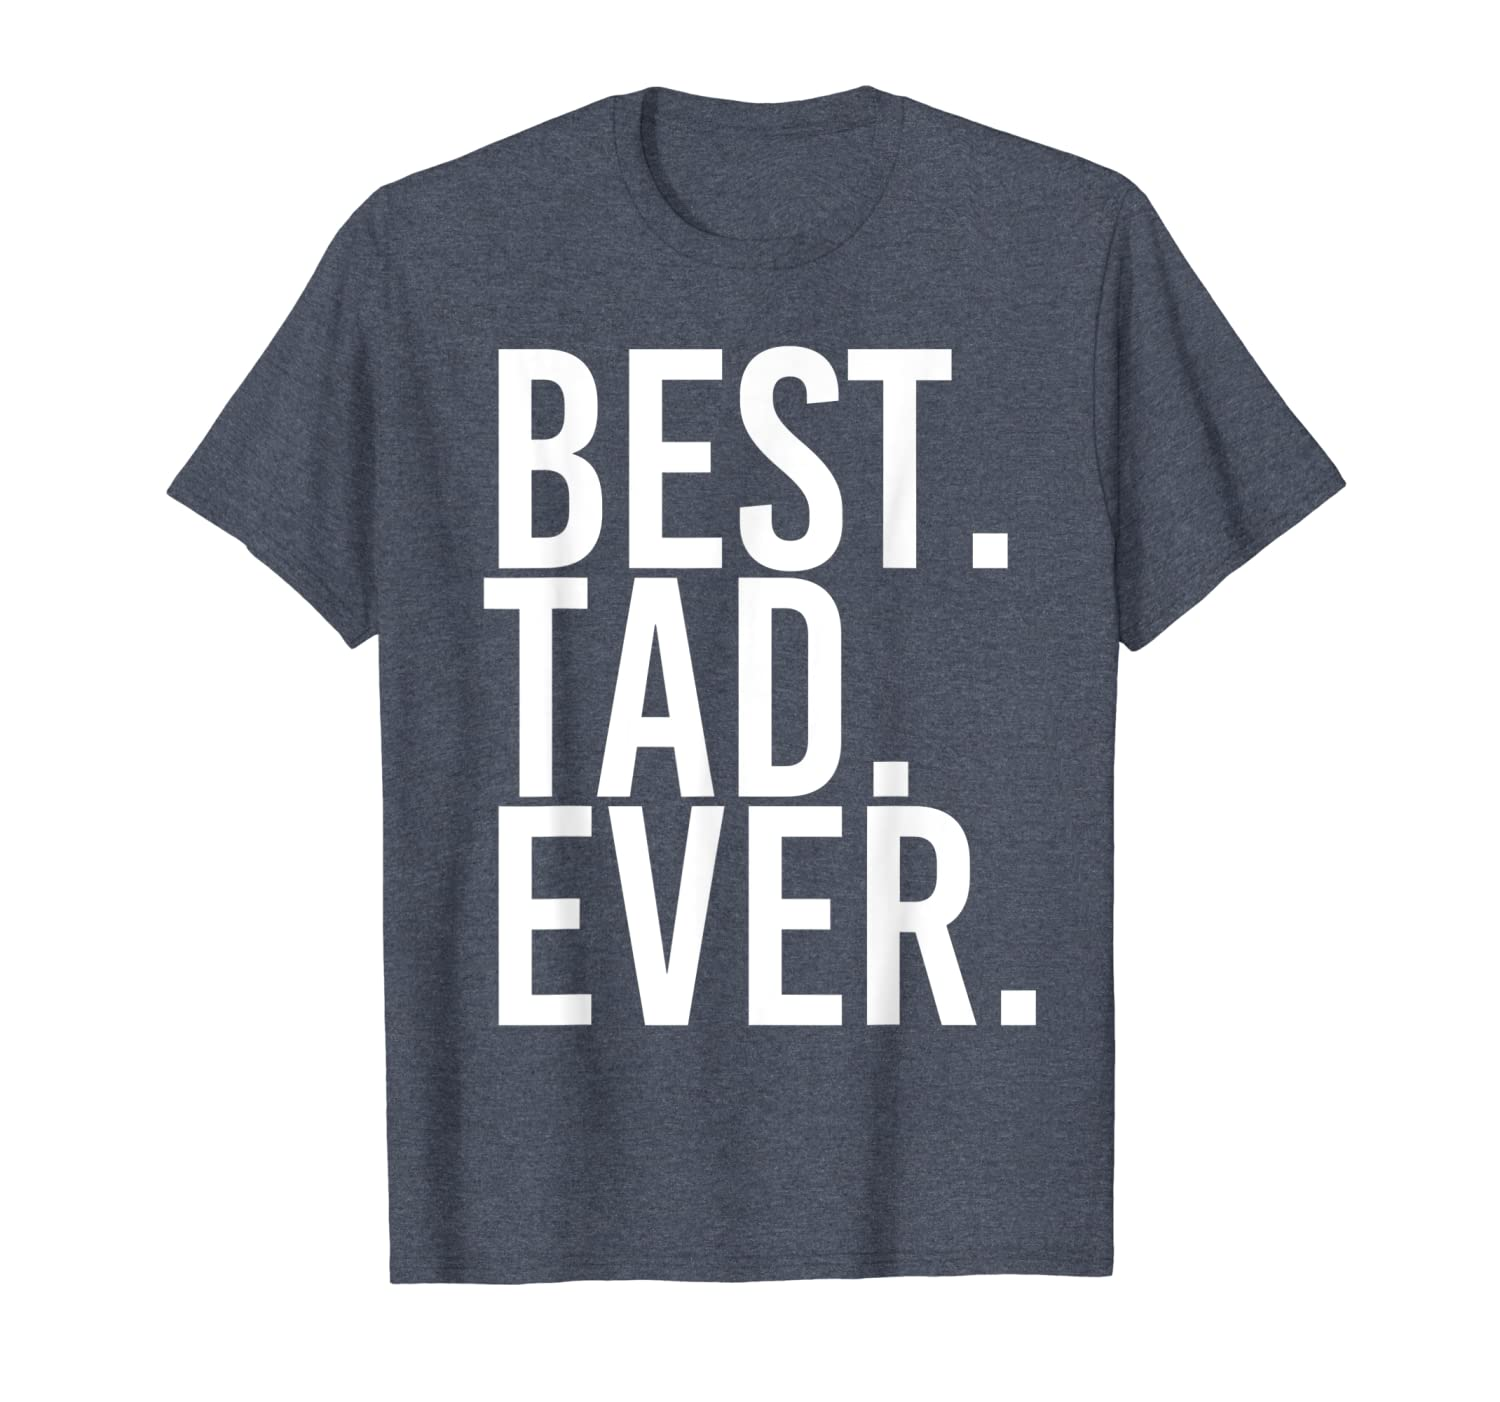 BEST. TAD. EVER. Funny Personalized Name Joke Gift Idea T-Shirt